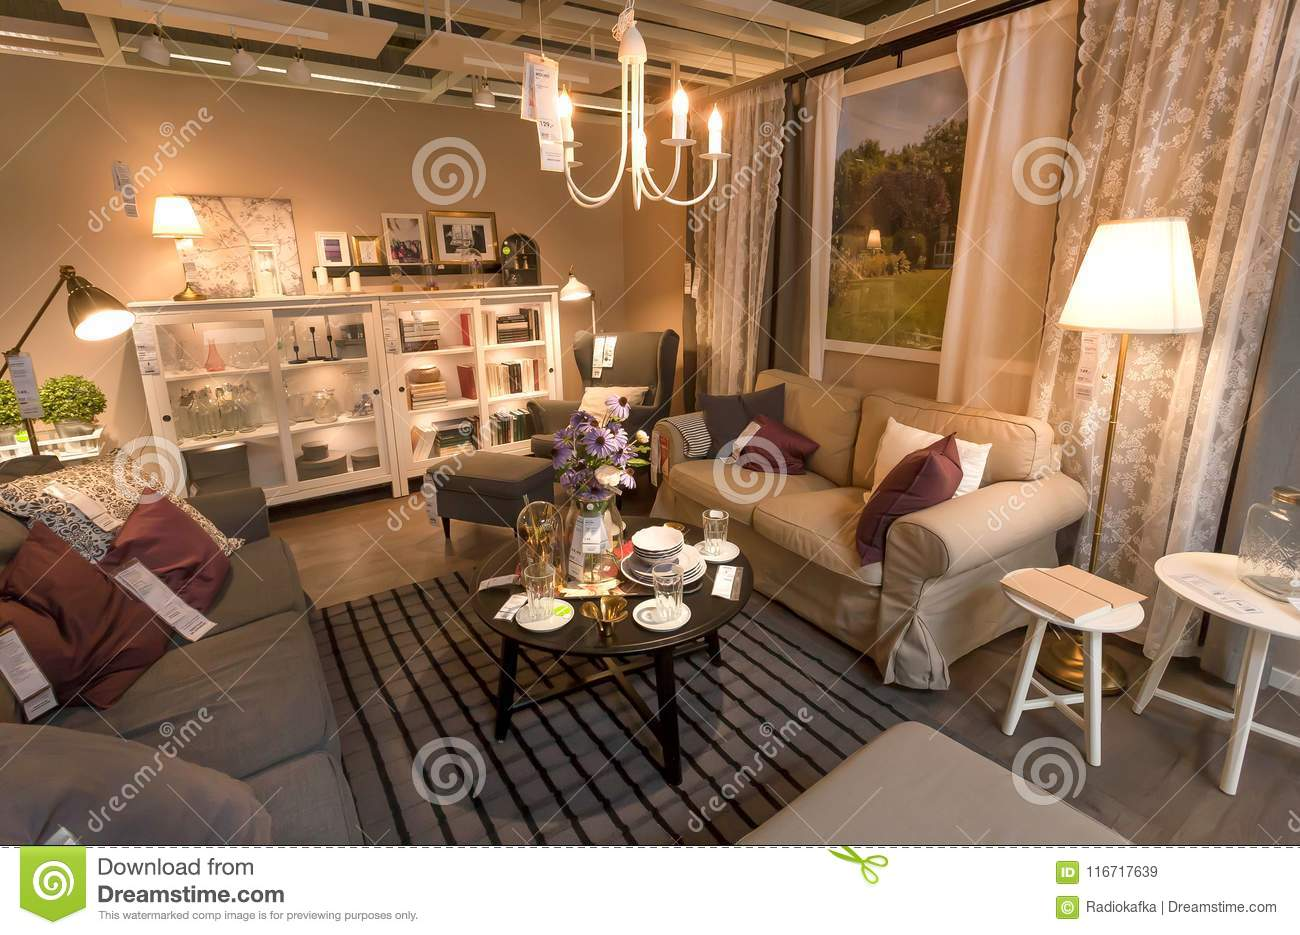 Warsaw poland apr 10 cute modern living room in large ikea store with furniture decor lamps and many products for home on april 10 2018